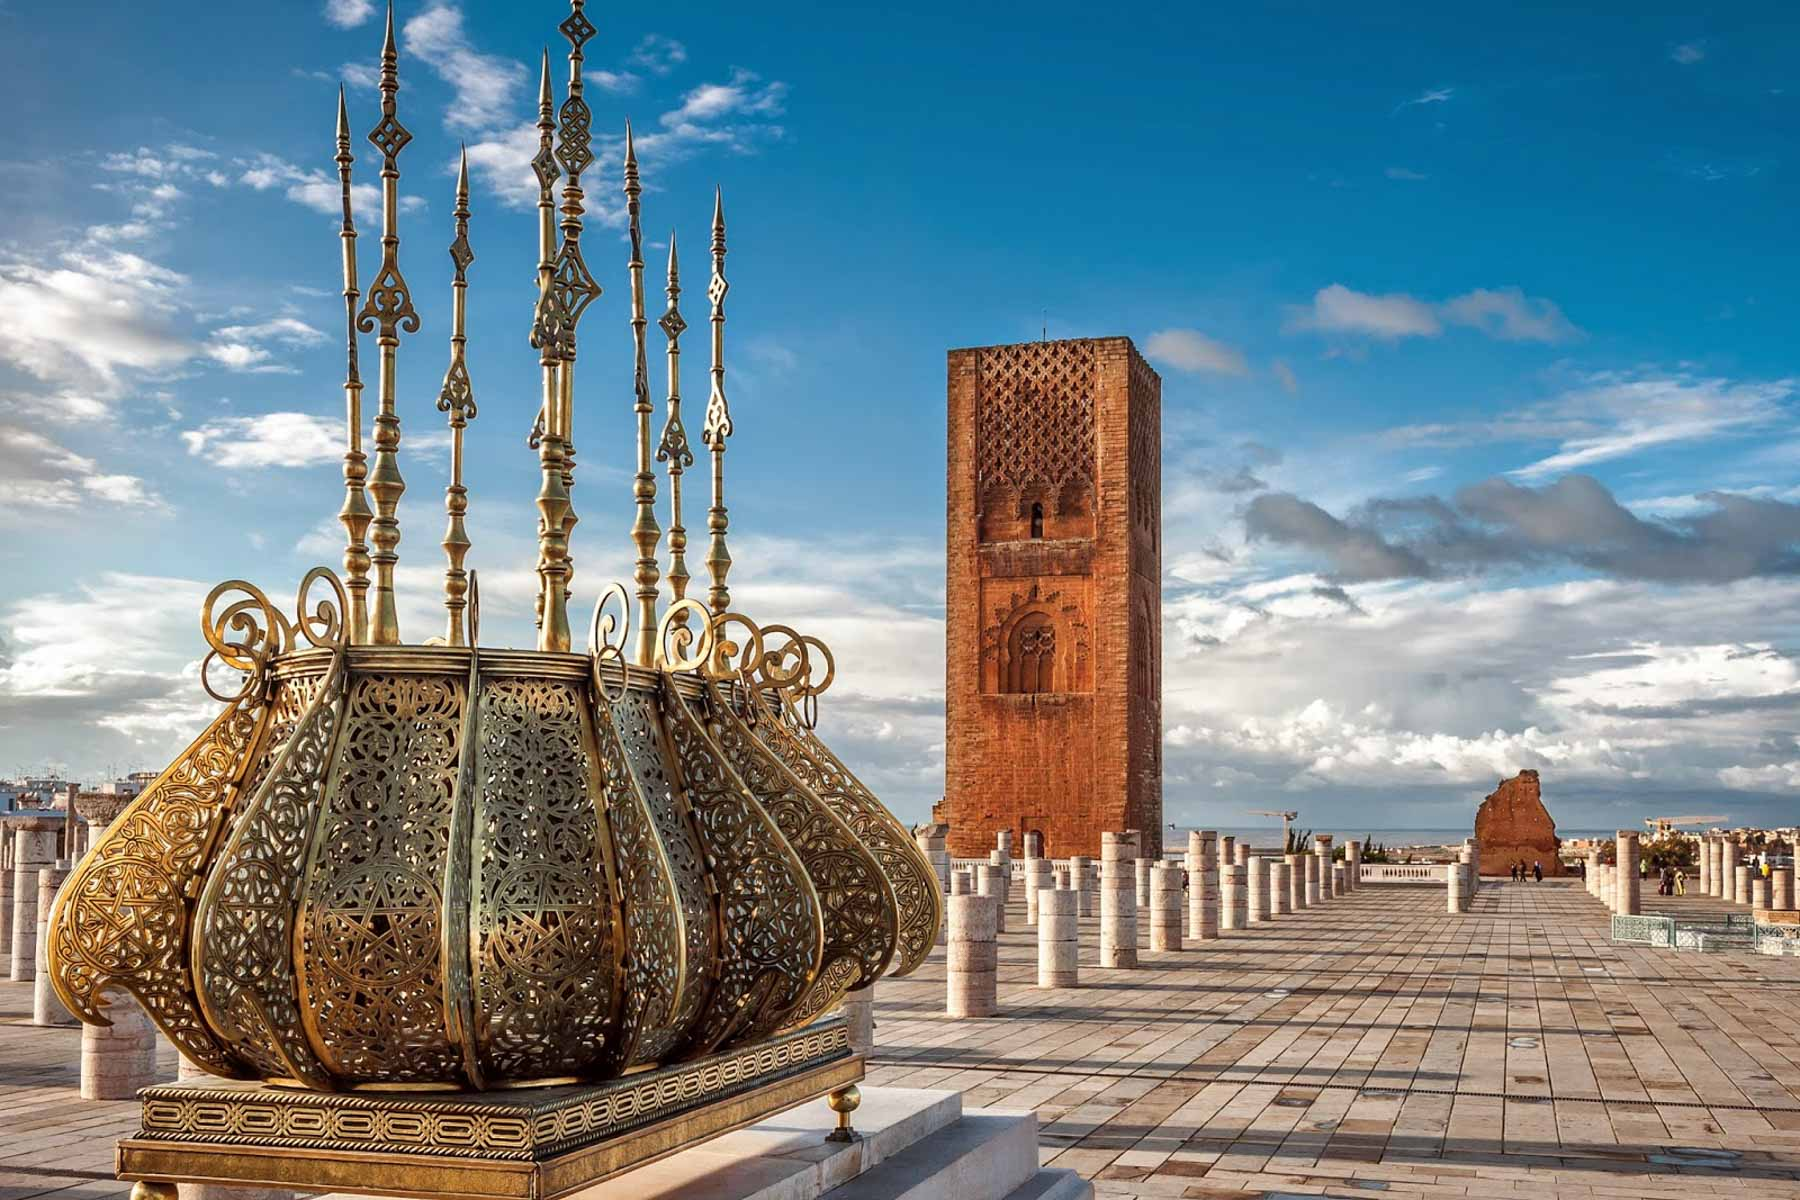 Morocco Deluxe Tour - 08 Days - 07 Nights